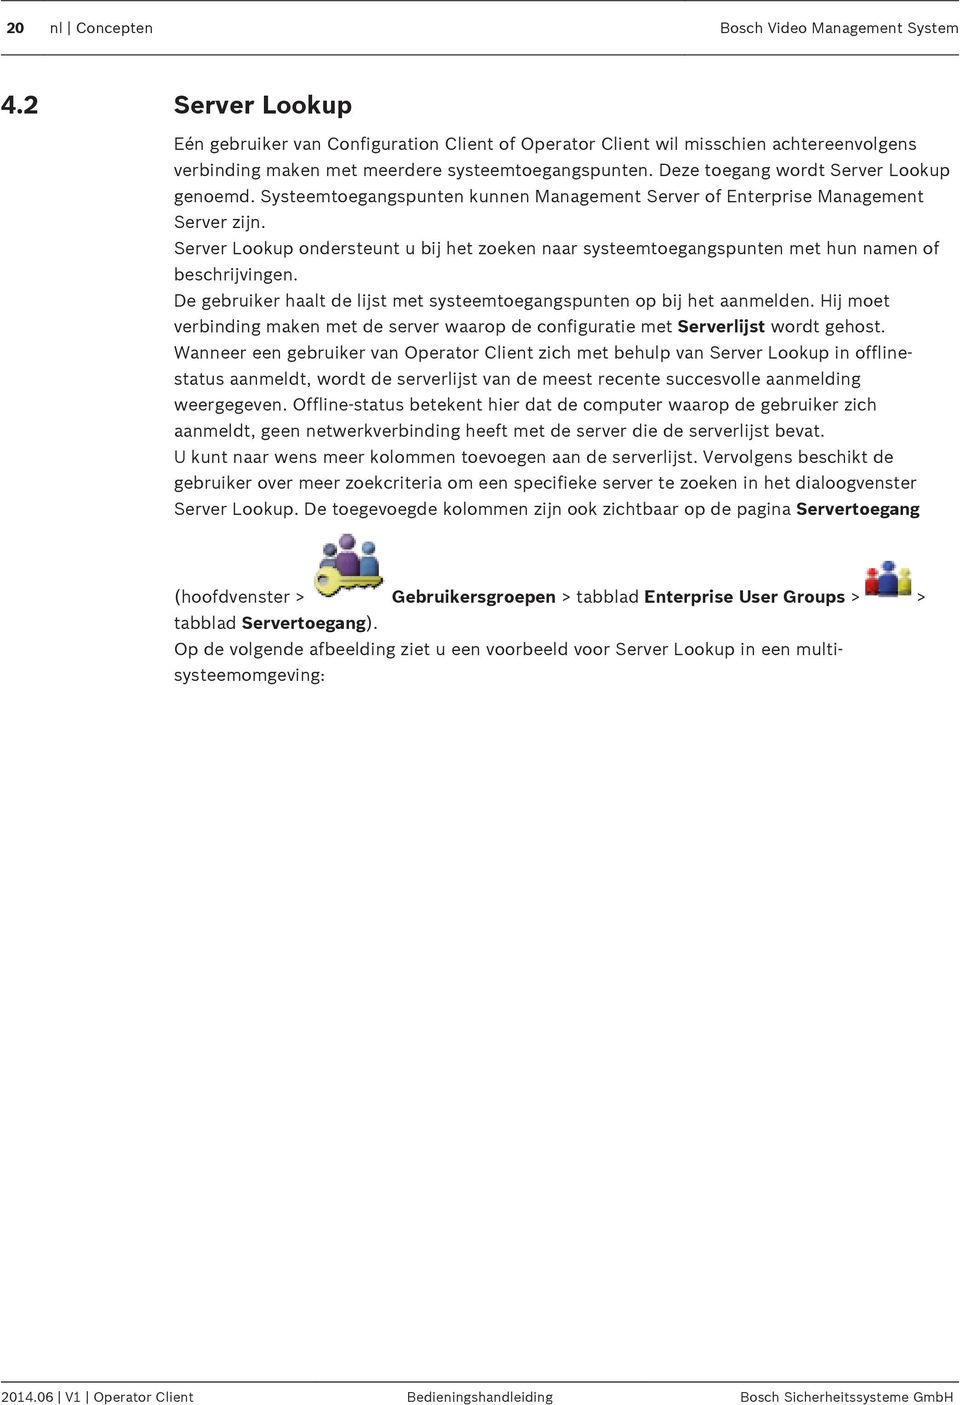 Systeemtoegangspunten kunnen Management Server of Enterprise Management Server zijn. Server Lookup ondersteunt u bij het zoeken naar systeemtoegangspunten met hun namen of beschrijvingen.